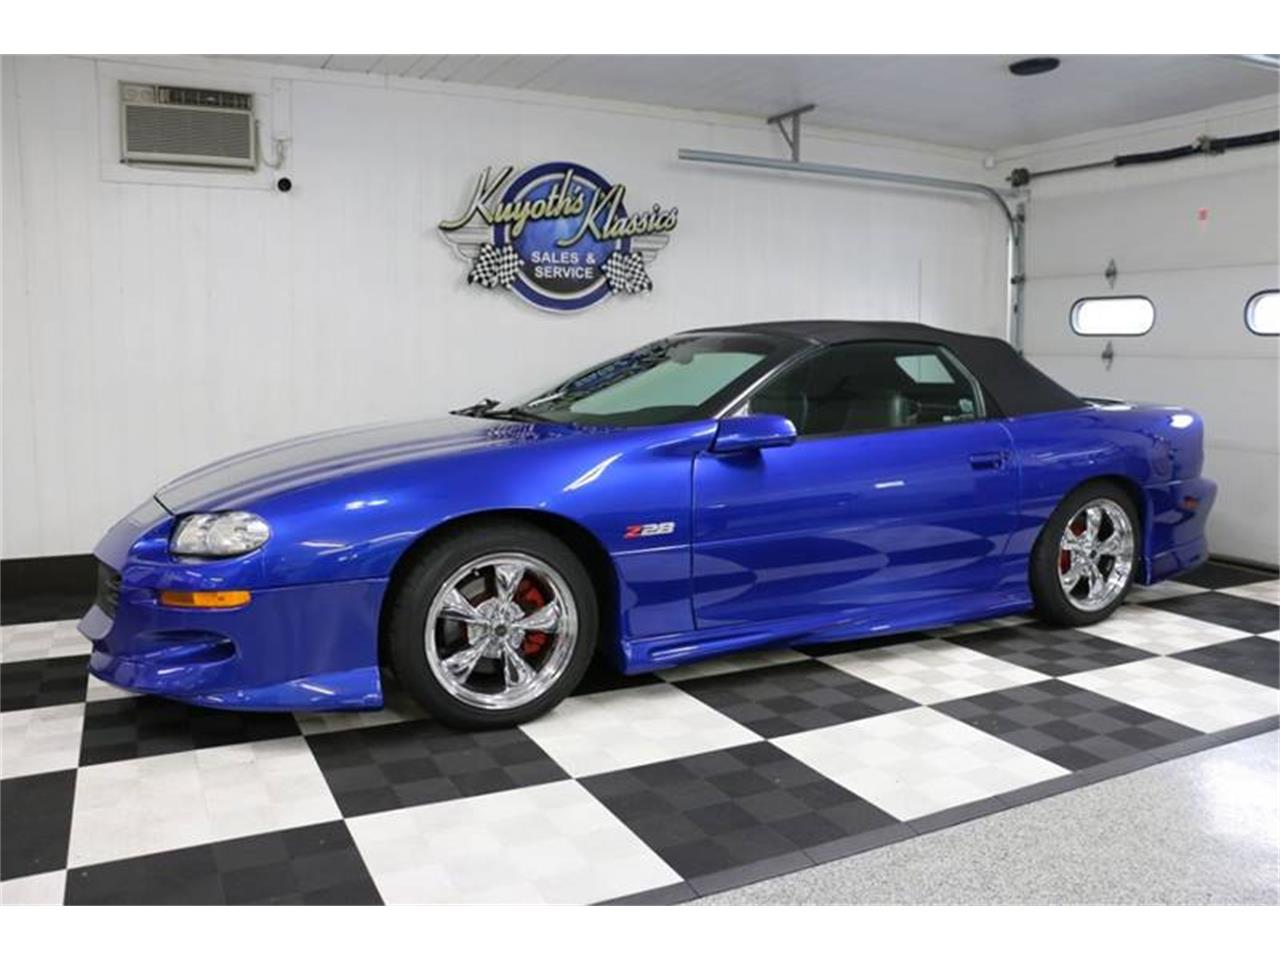 Large Picture of '02 Chevrolet Camaro located in Wisconsin - $18,995.00 Offered by Kuyoth's Klassics - QY5C